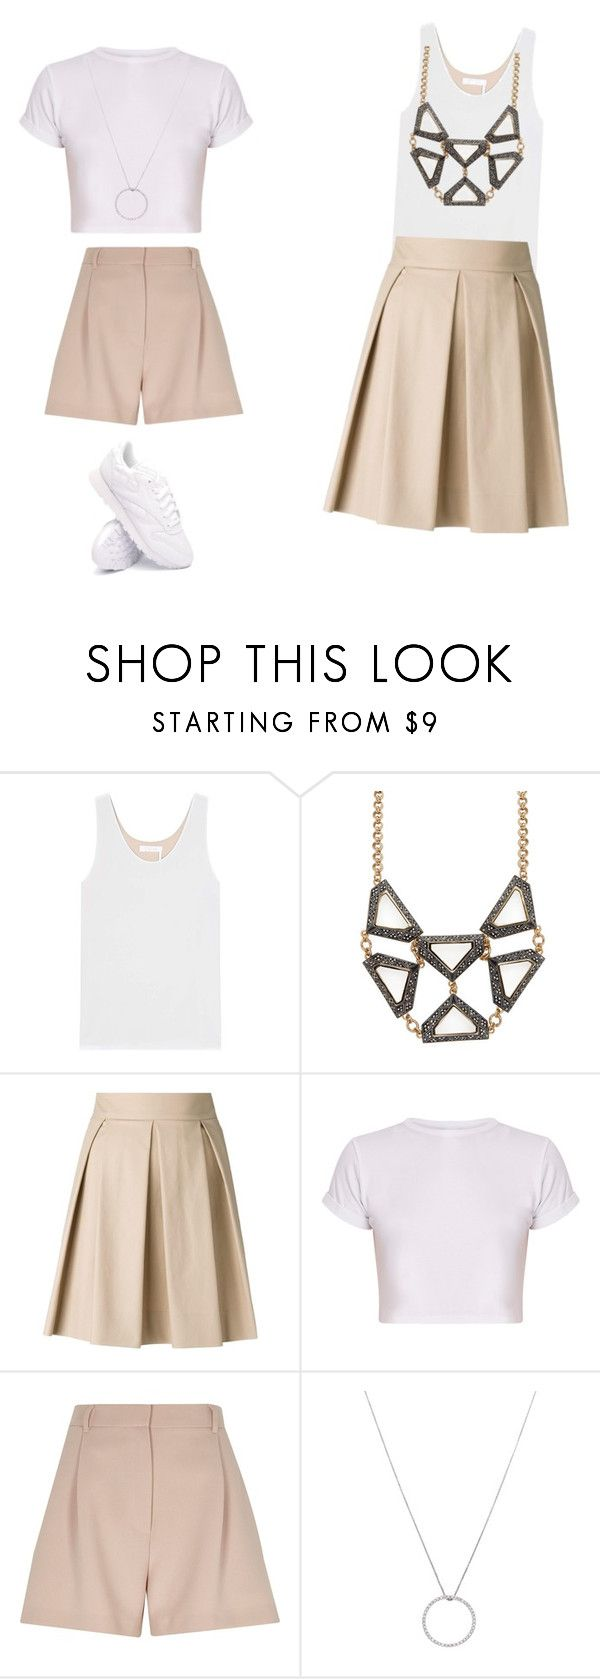 """""""Untitled #34"""" by galda ❤ liked on Polyvore featuring Chloé, Lulu Frost, Boutique Moschino, River Island, Roberto Coin and Reebok"""